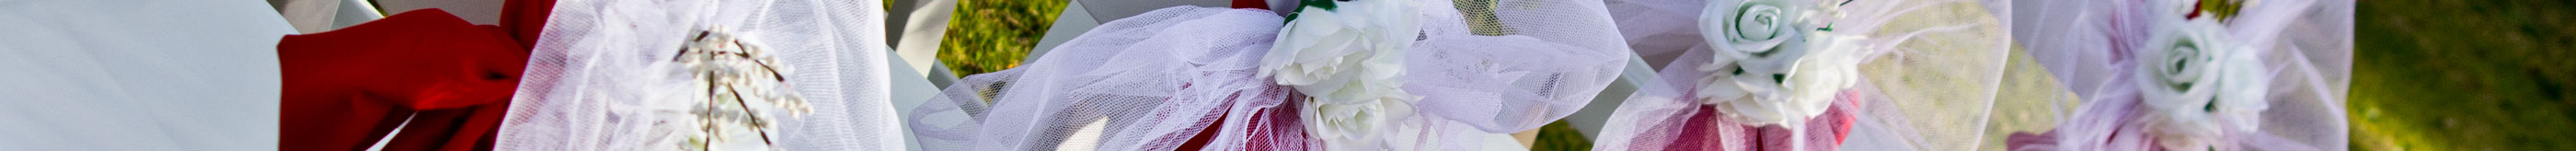 Weddings-banner-02